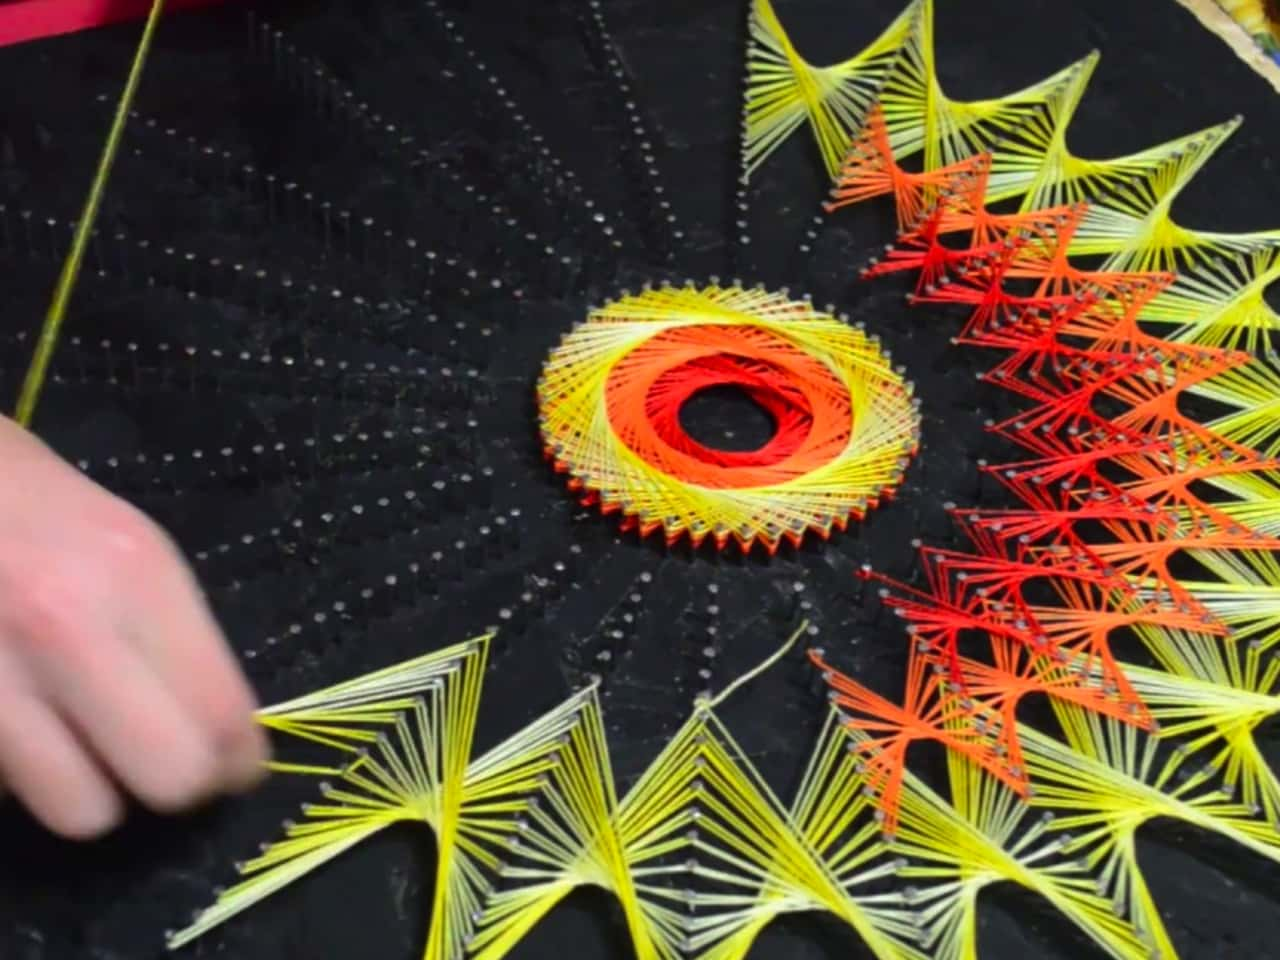 Closeup photo of creative string art on black foam board using green and red neon coloured string